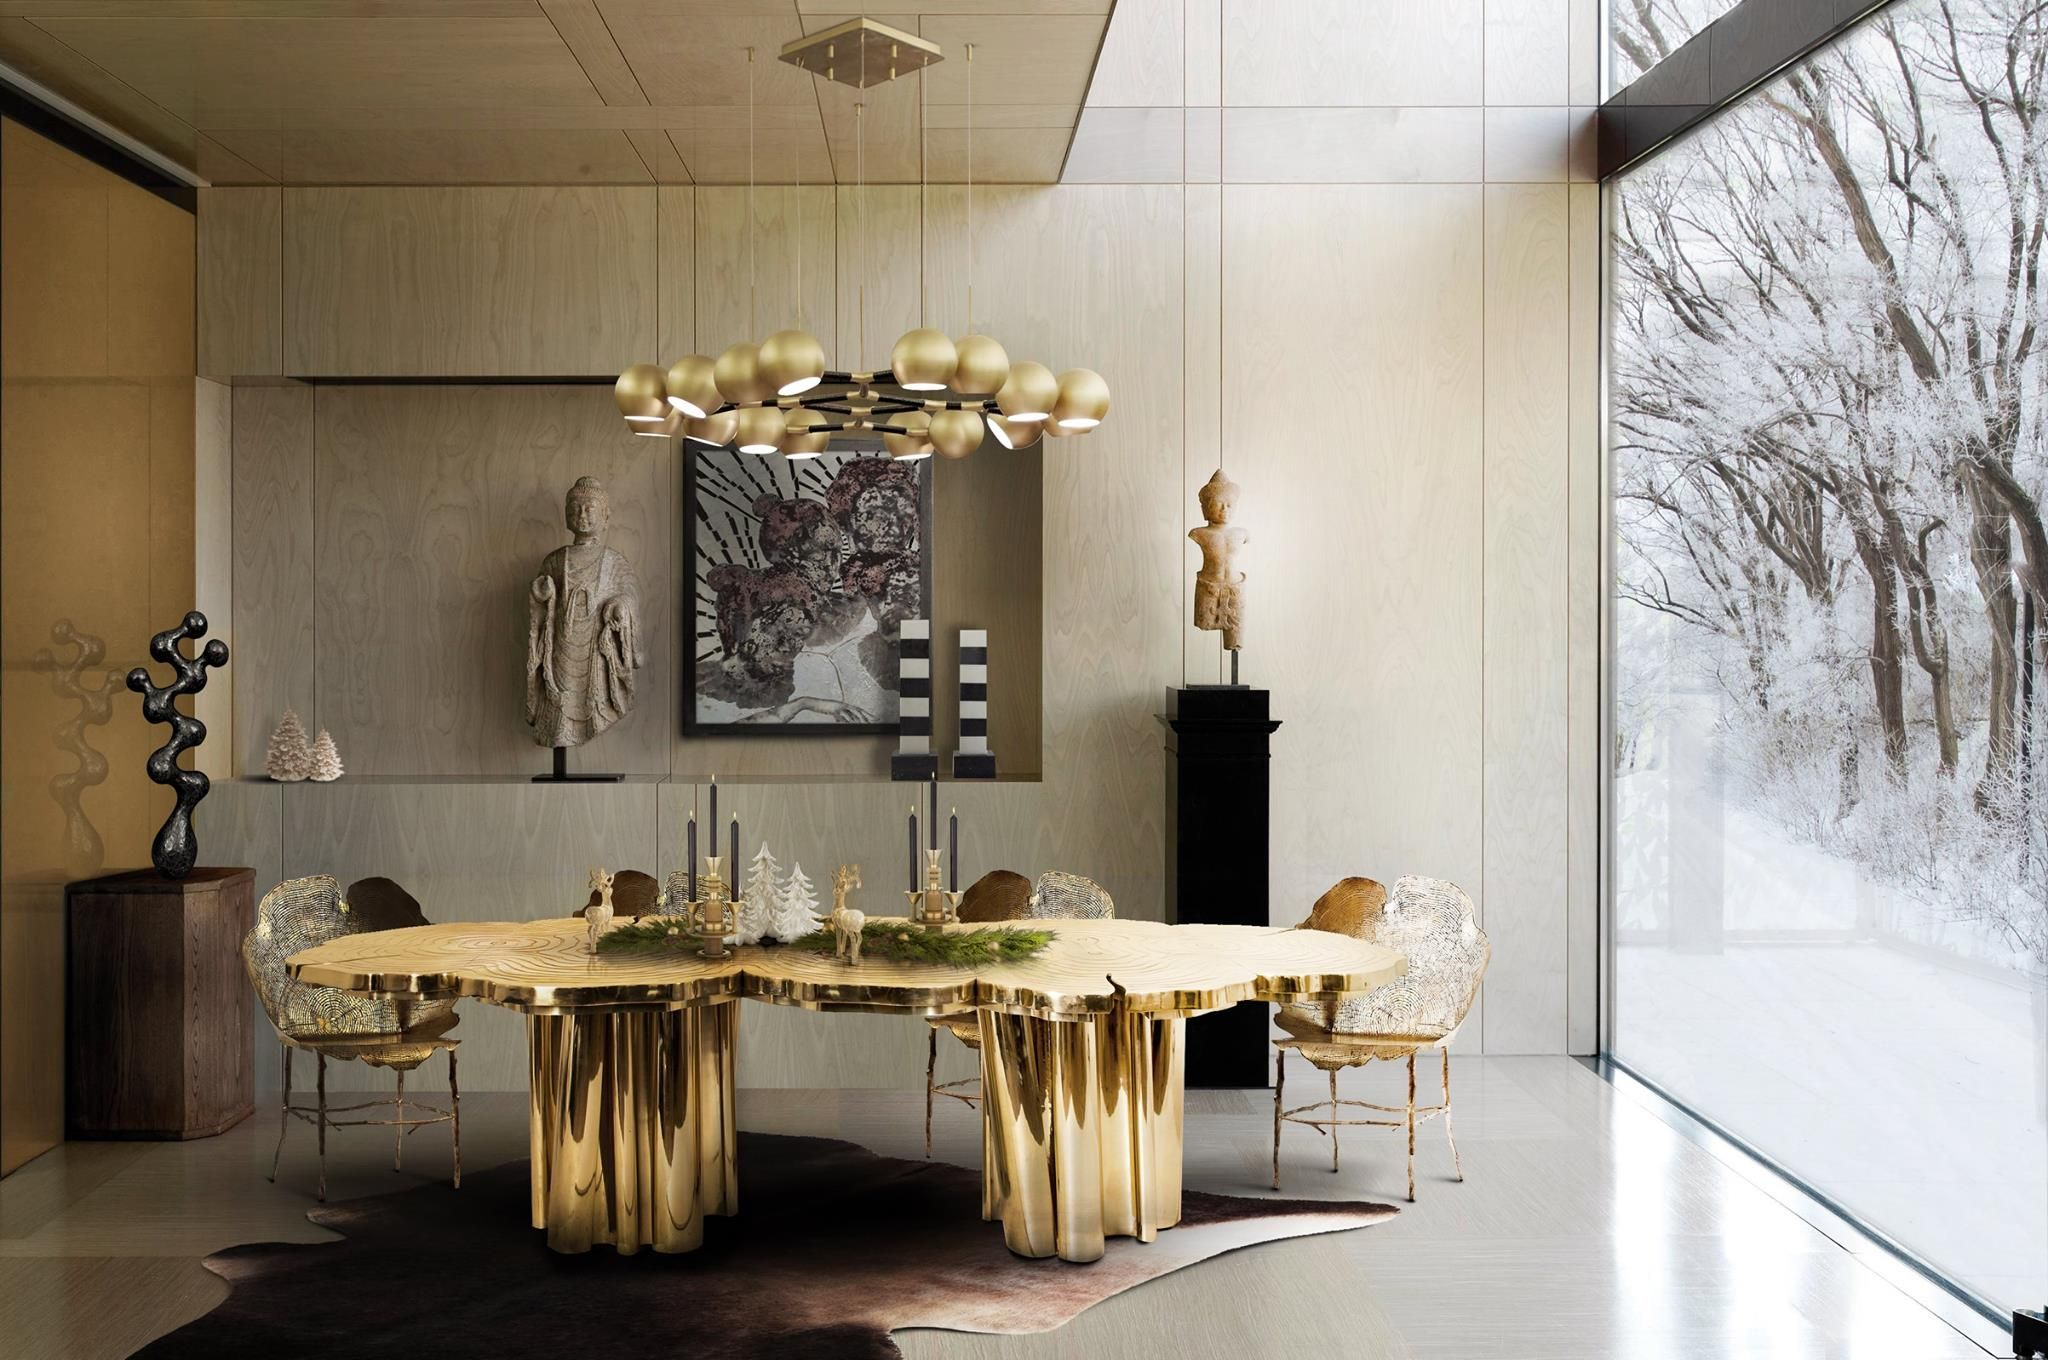 30 Pretty Picture Of Amazing Dining Rooms Amazing Dining Rooms 5 10 Amazing Dining Room Decor Dining Room Design Modern Dining Room Decor Modern Dining Table